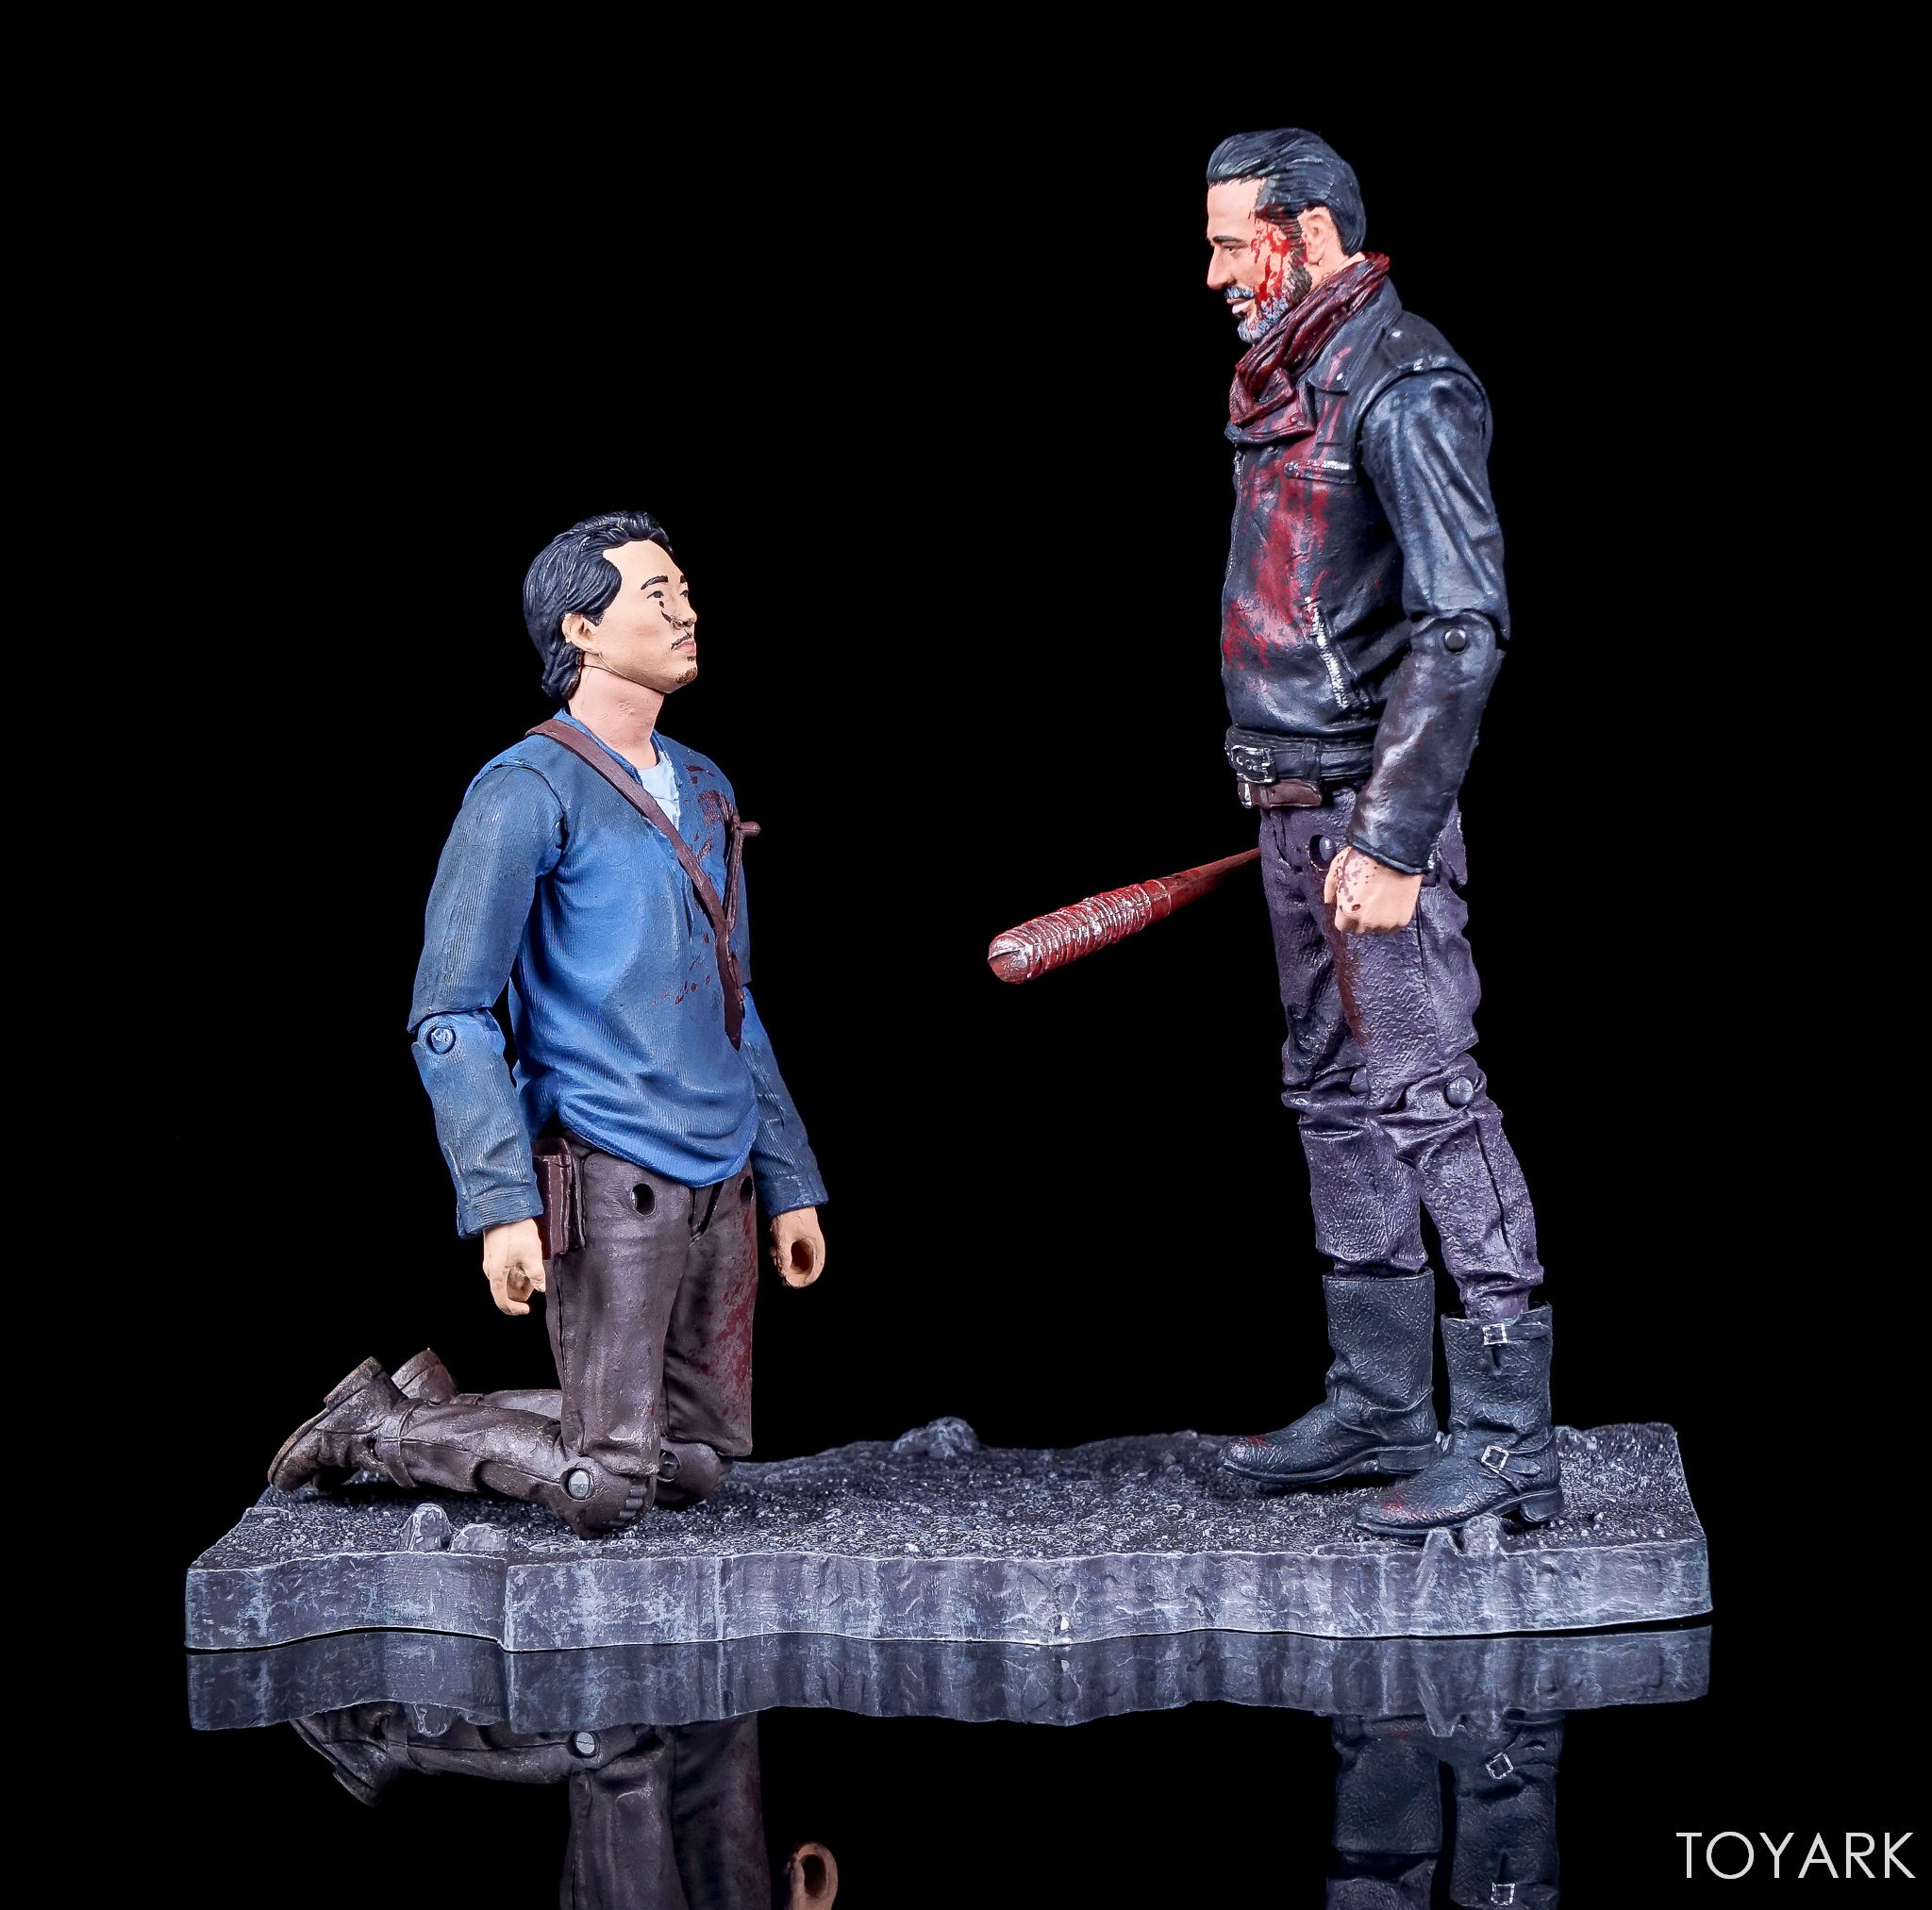 http://news.toyark.com/wp-content/uploads/sites/4/2017/09/Walking-Dead-Glenn-and-Negan-Set-003.jpg